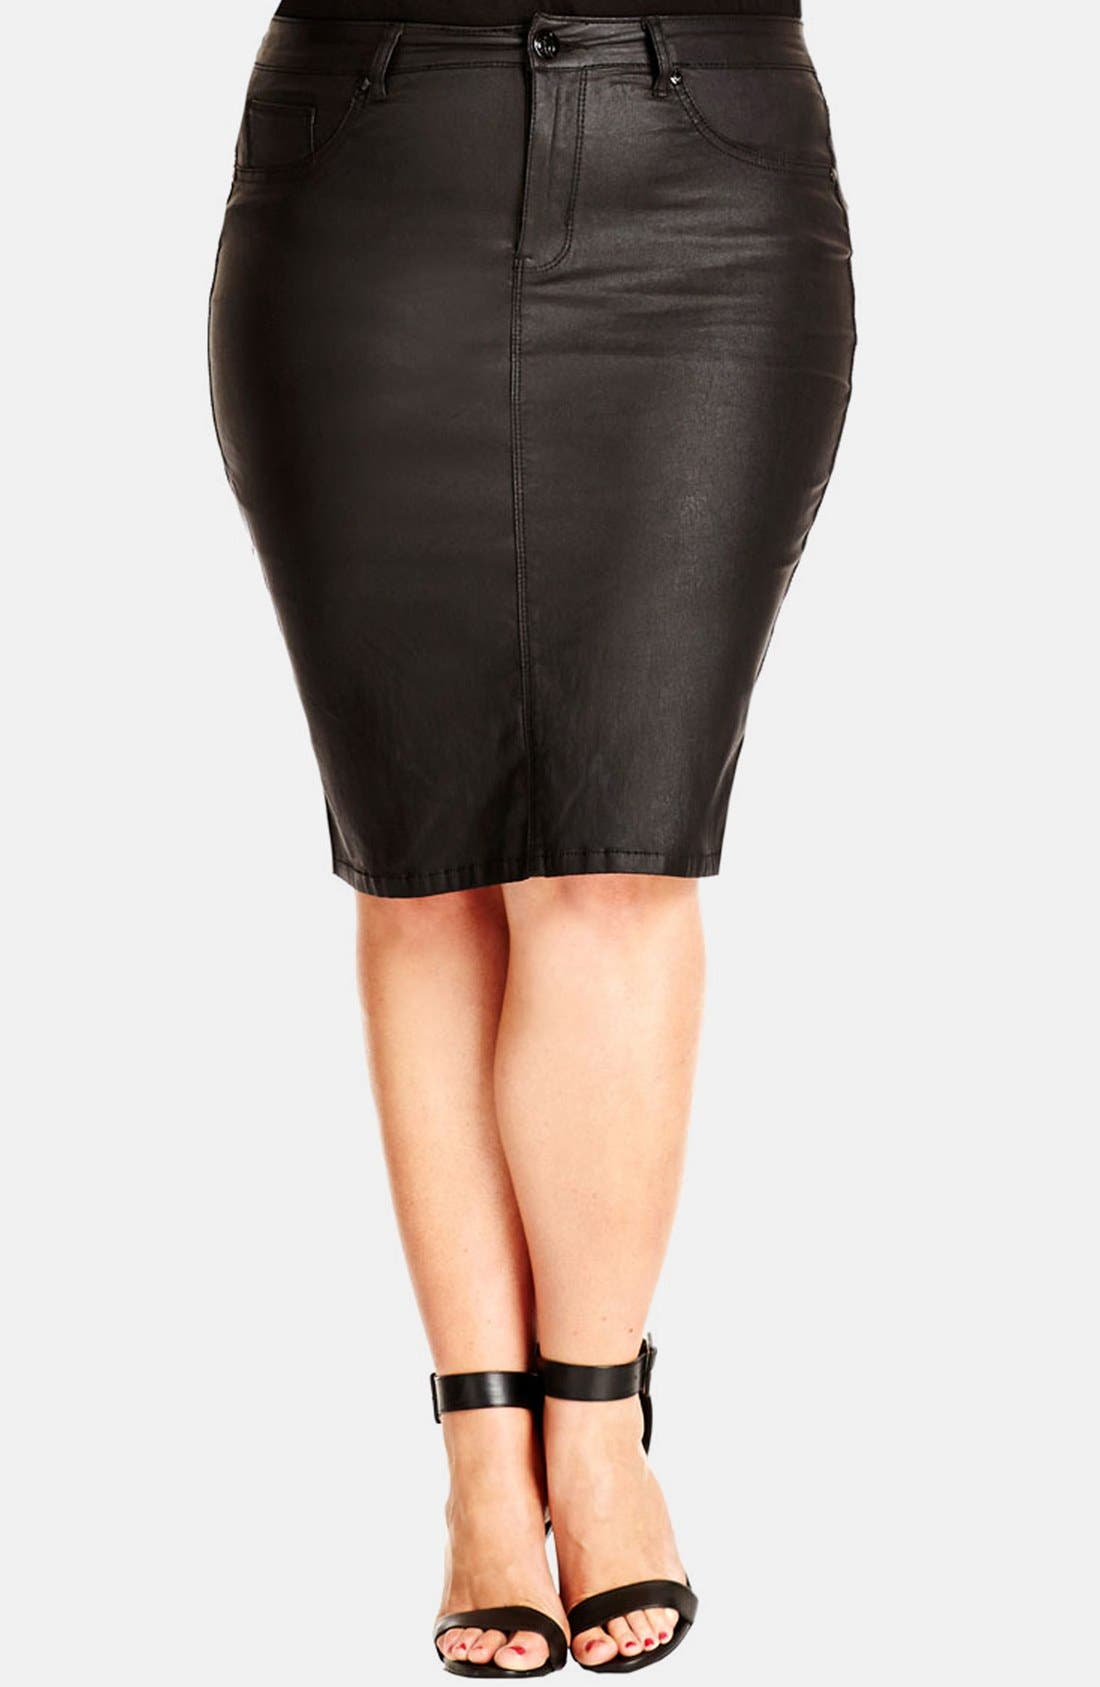 Alternate Image 1 Selected - City Chic 'Wet Look' Pencil Skirt (Plus Size)